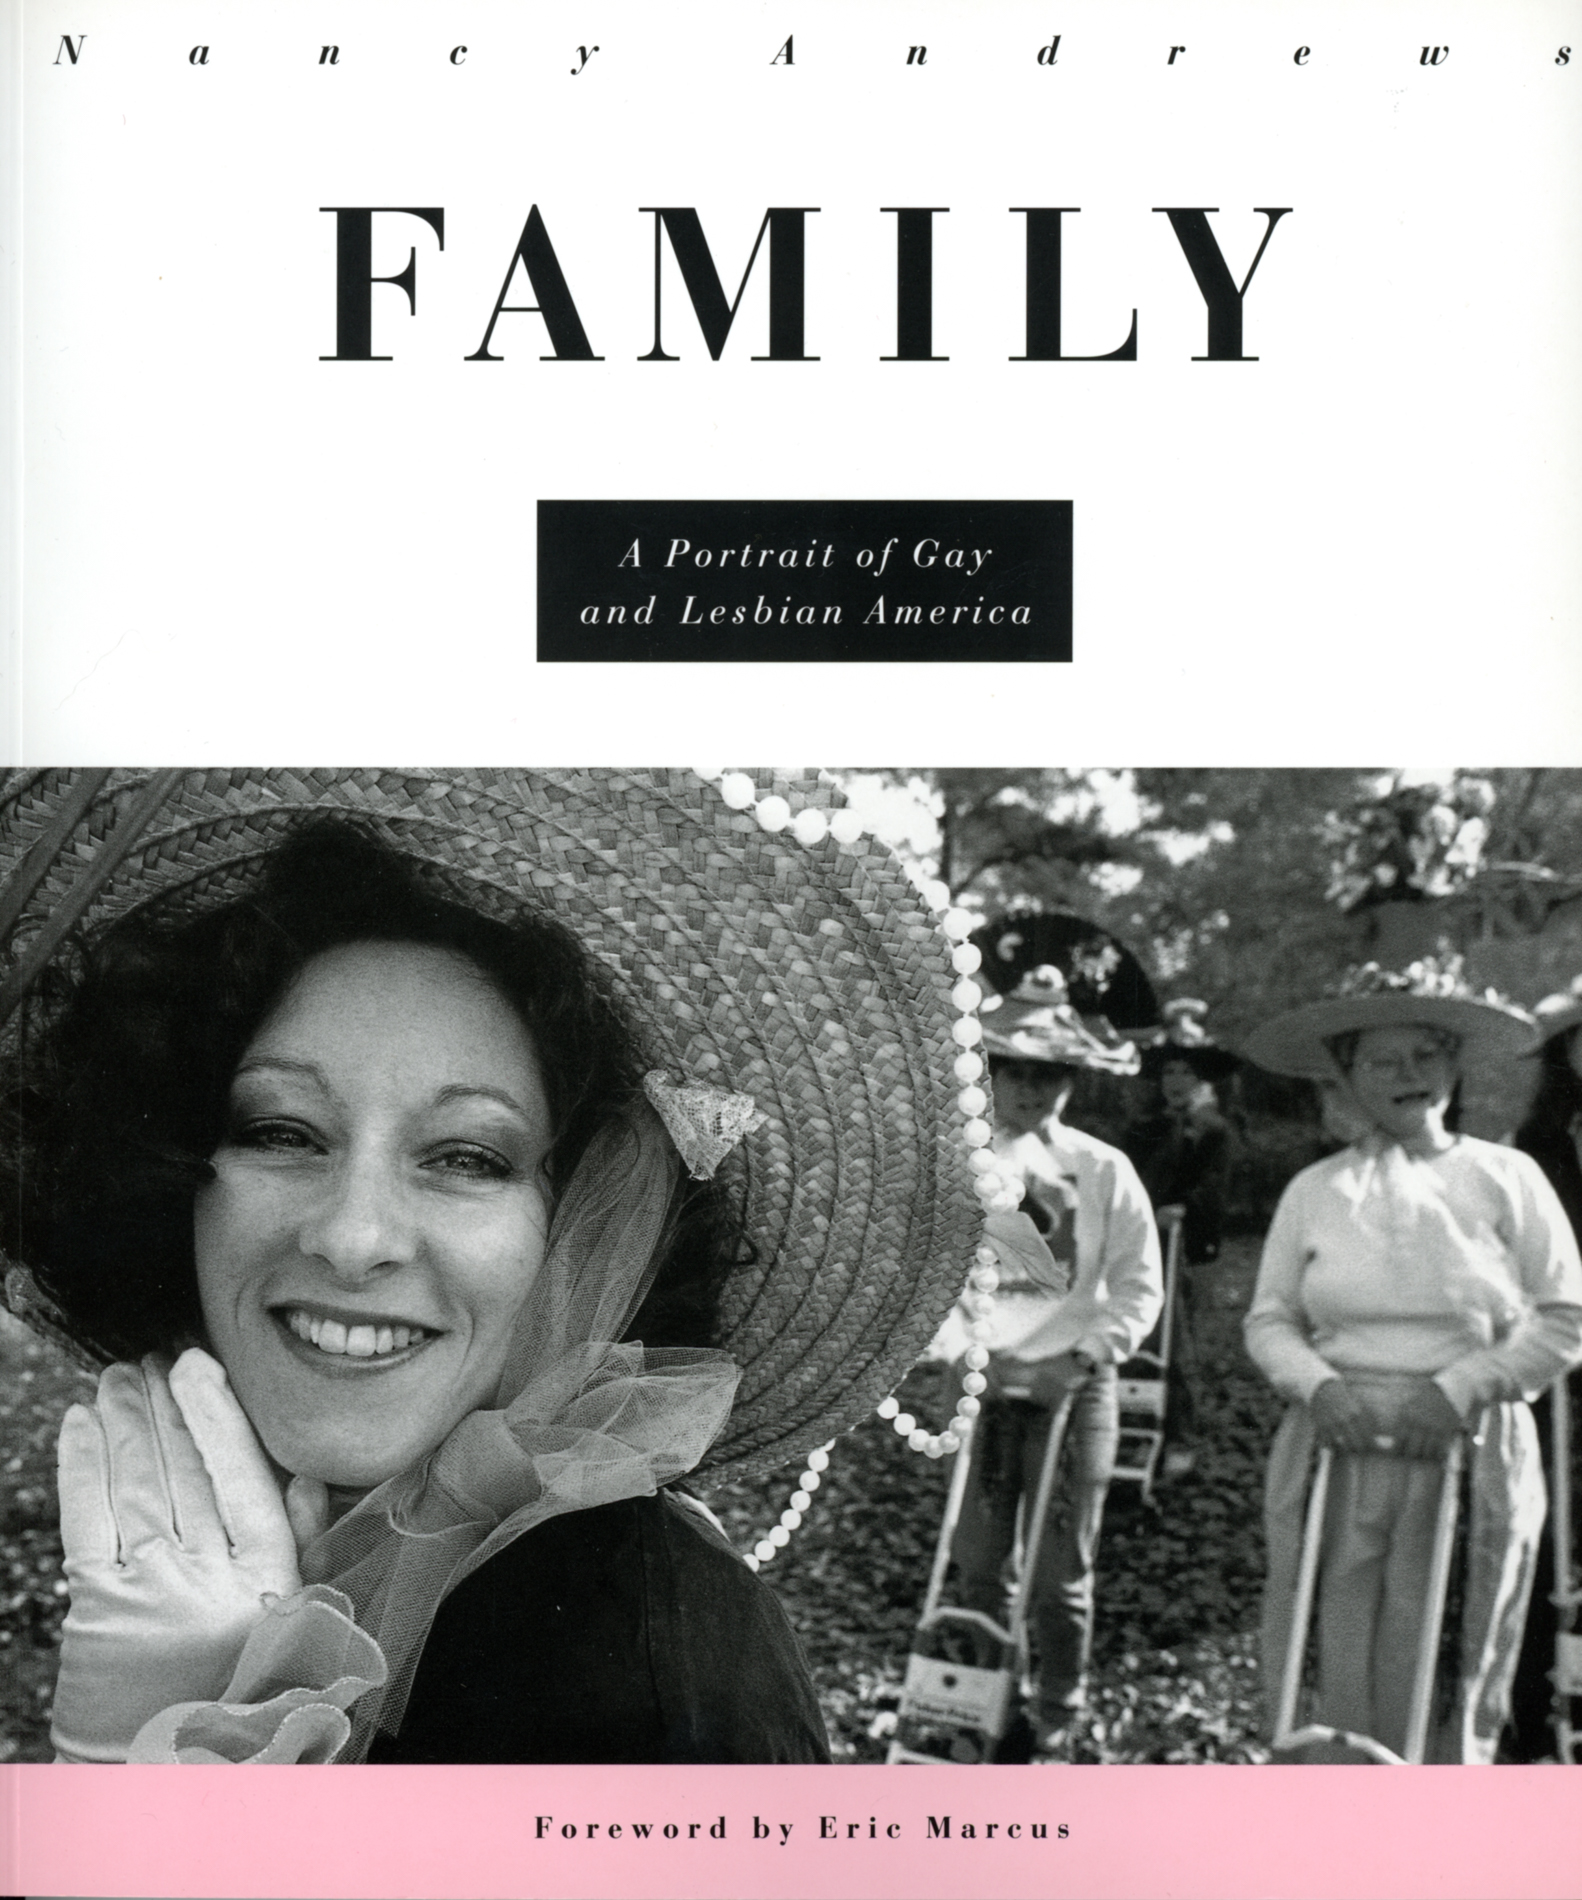 Family-portrait-gay-lesbian-america-cover